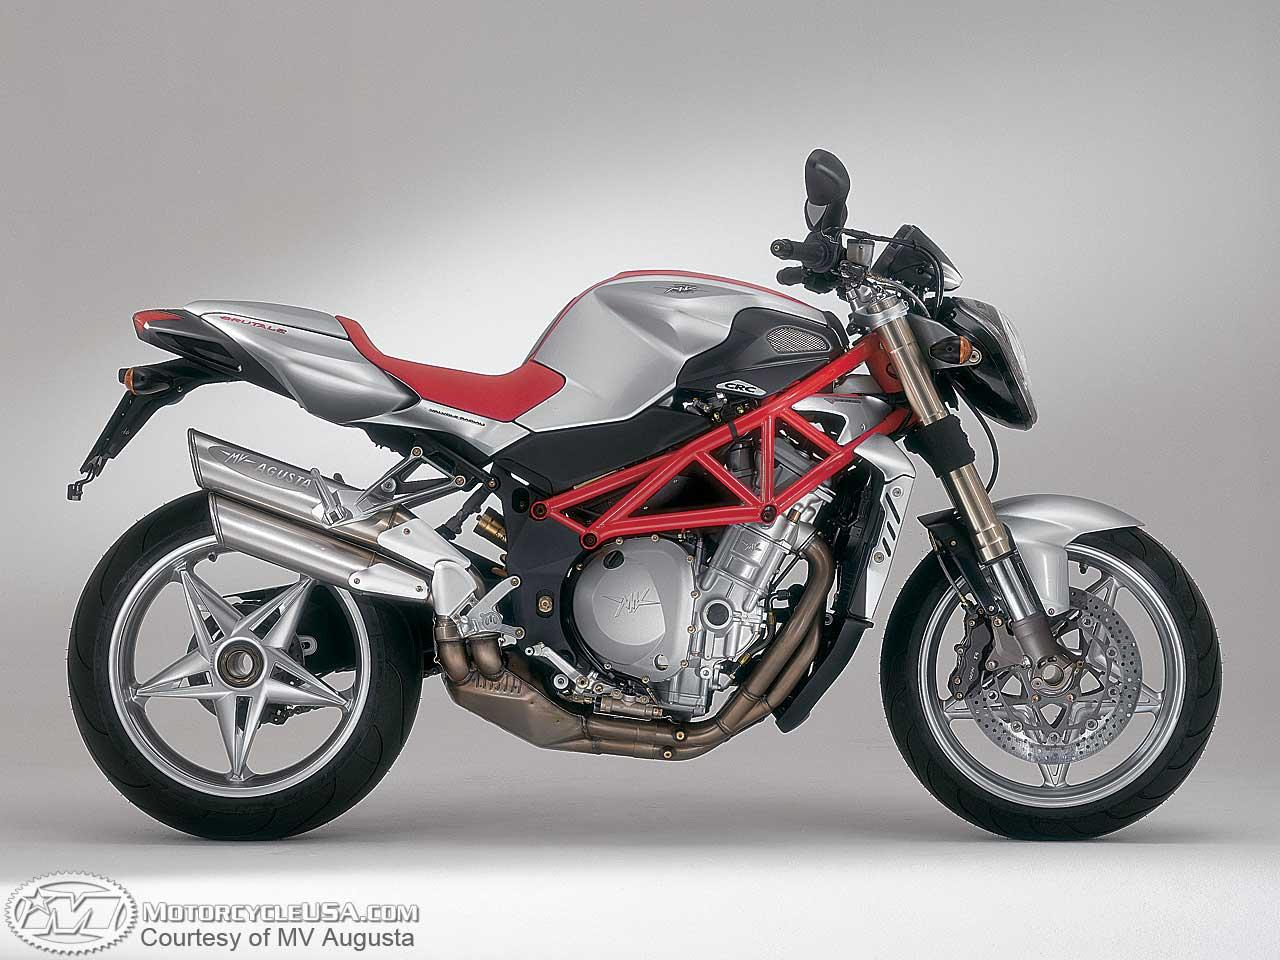 mv agusta mv agusta brutale 750 america moto zombdrive com. Black Bedroom Furniture Sets. Home Design Ideas